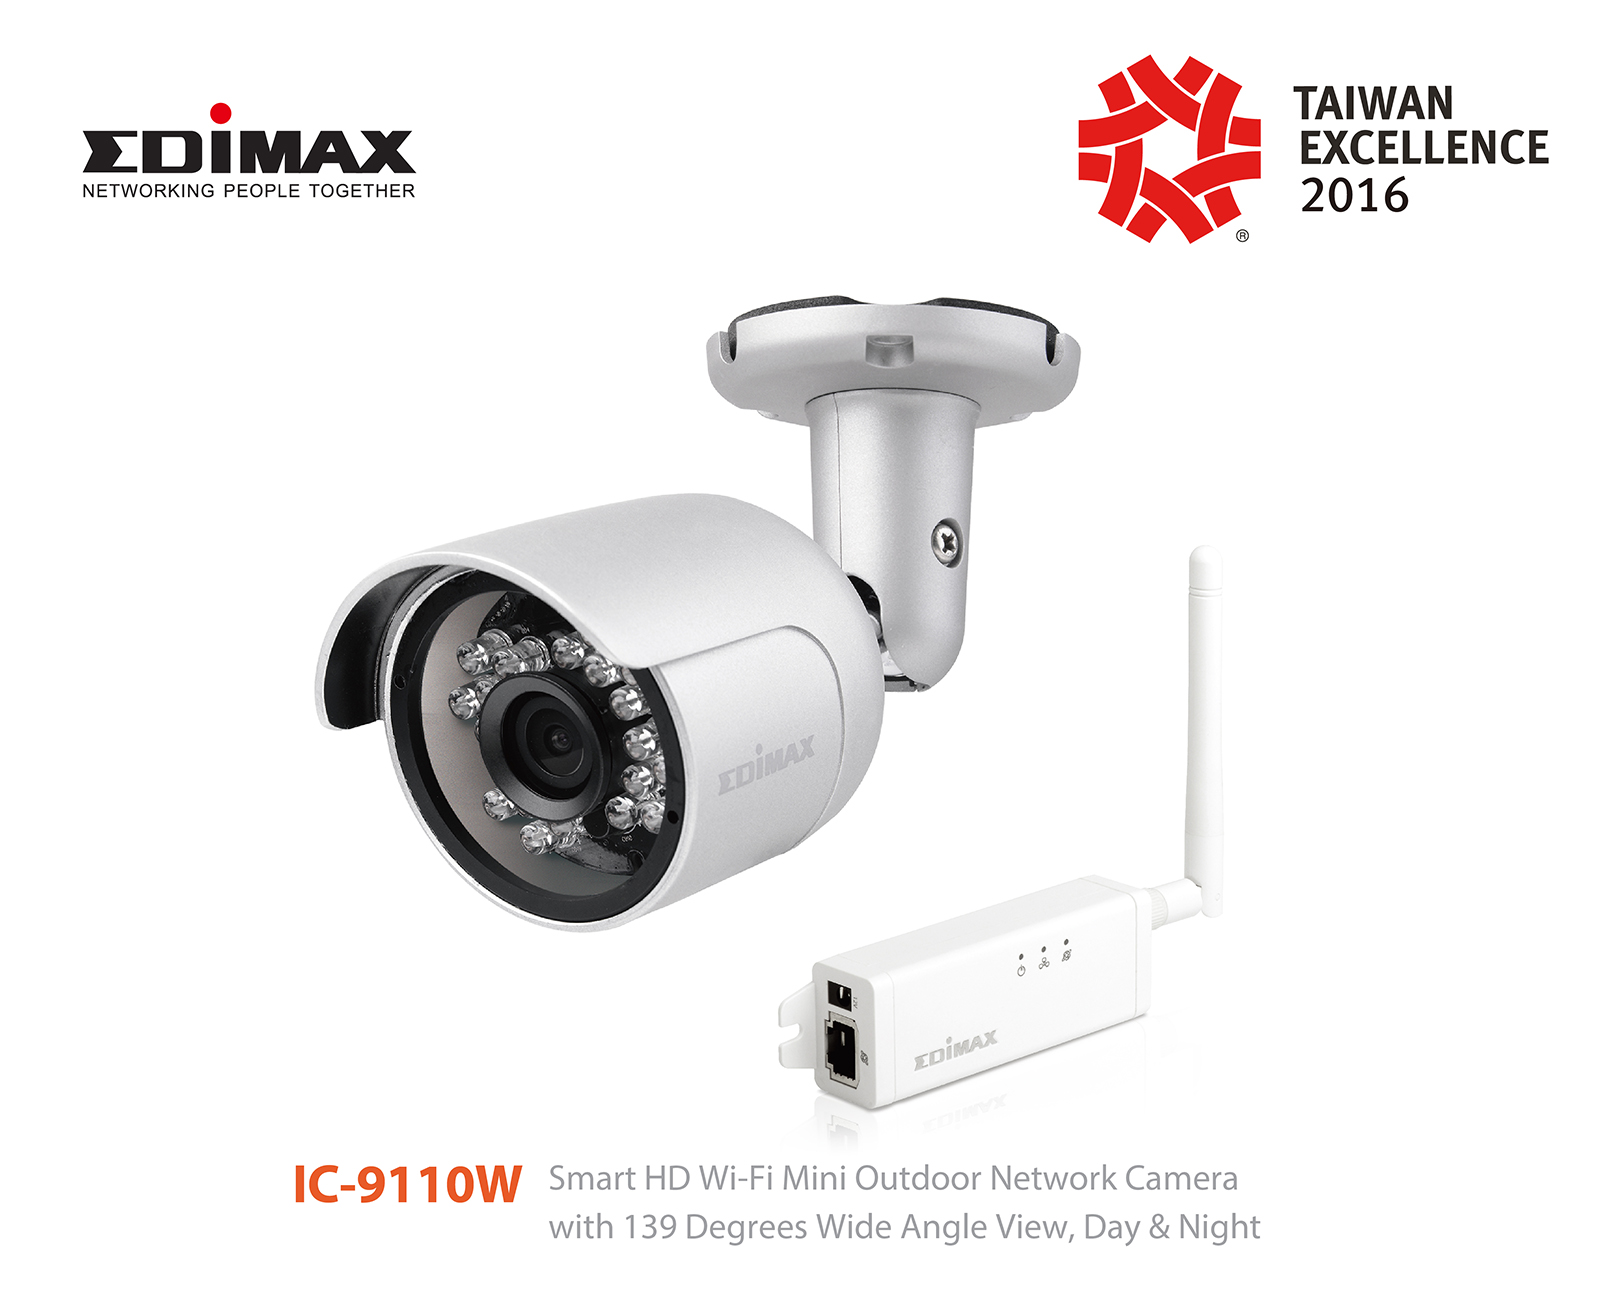 IC-9110W Taiwan Excellence 2016